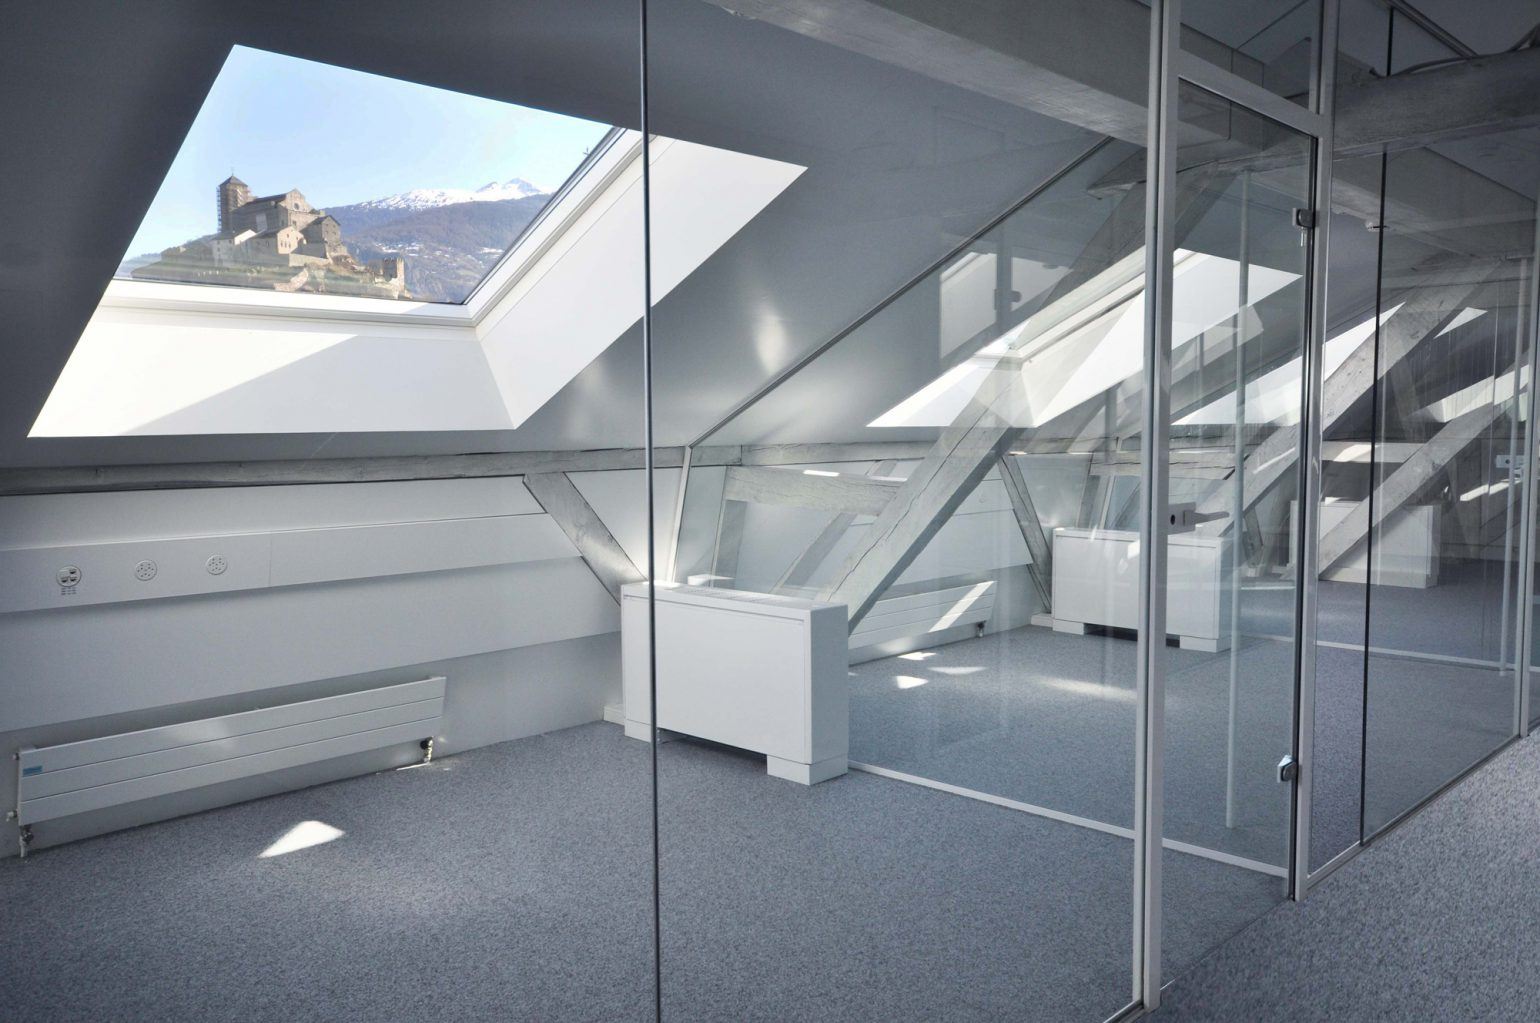 palais_justice_sion_meyer_architecture_sion_06